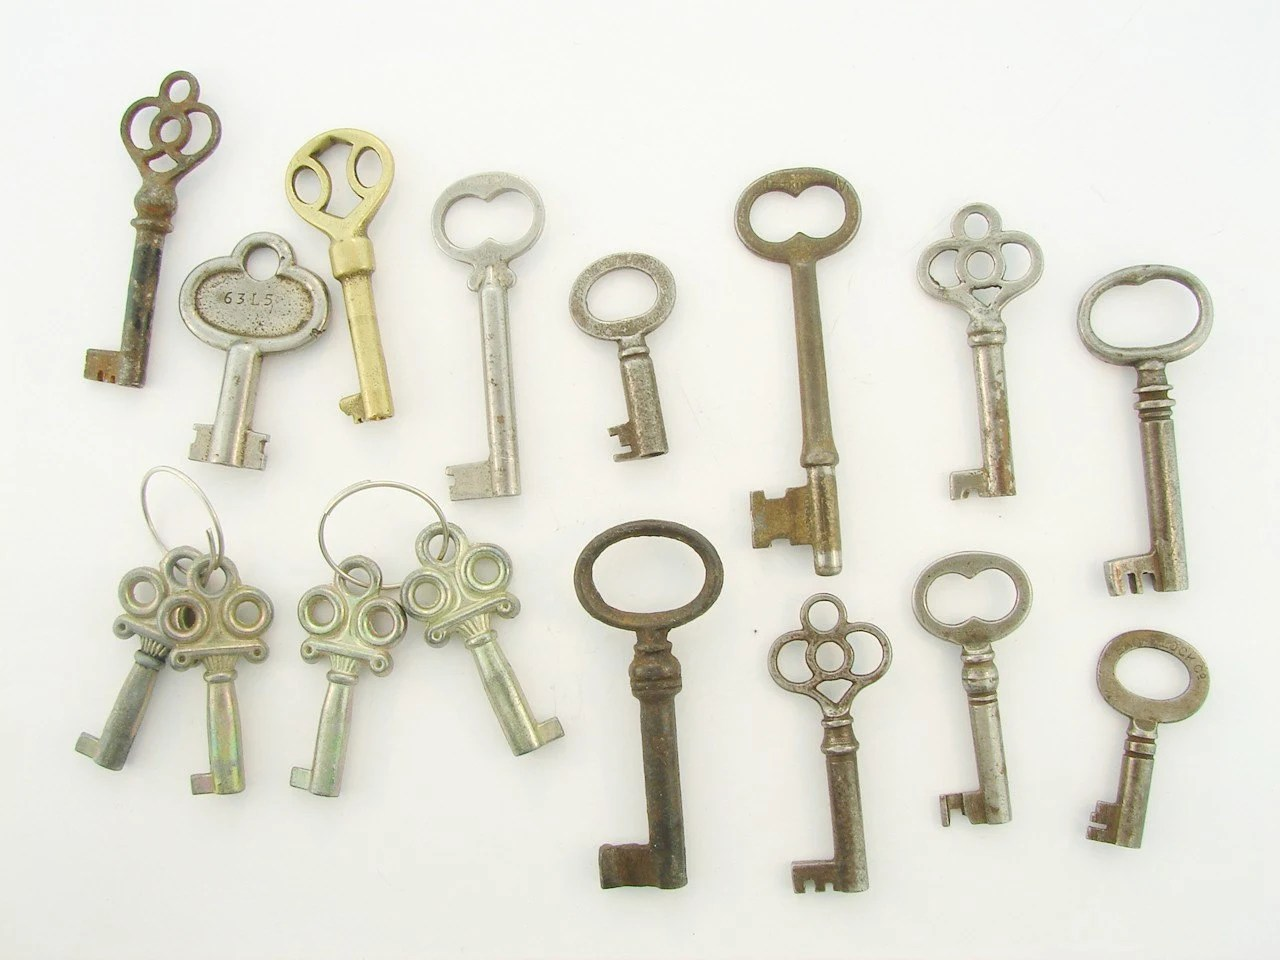 LOT of antique vintage keys / key TOTAL of 16